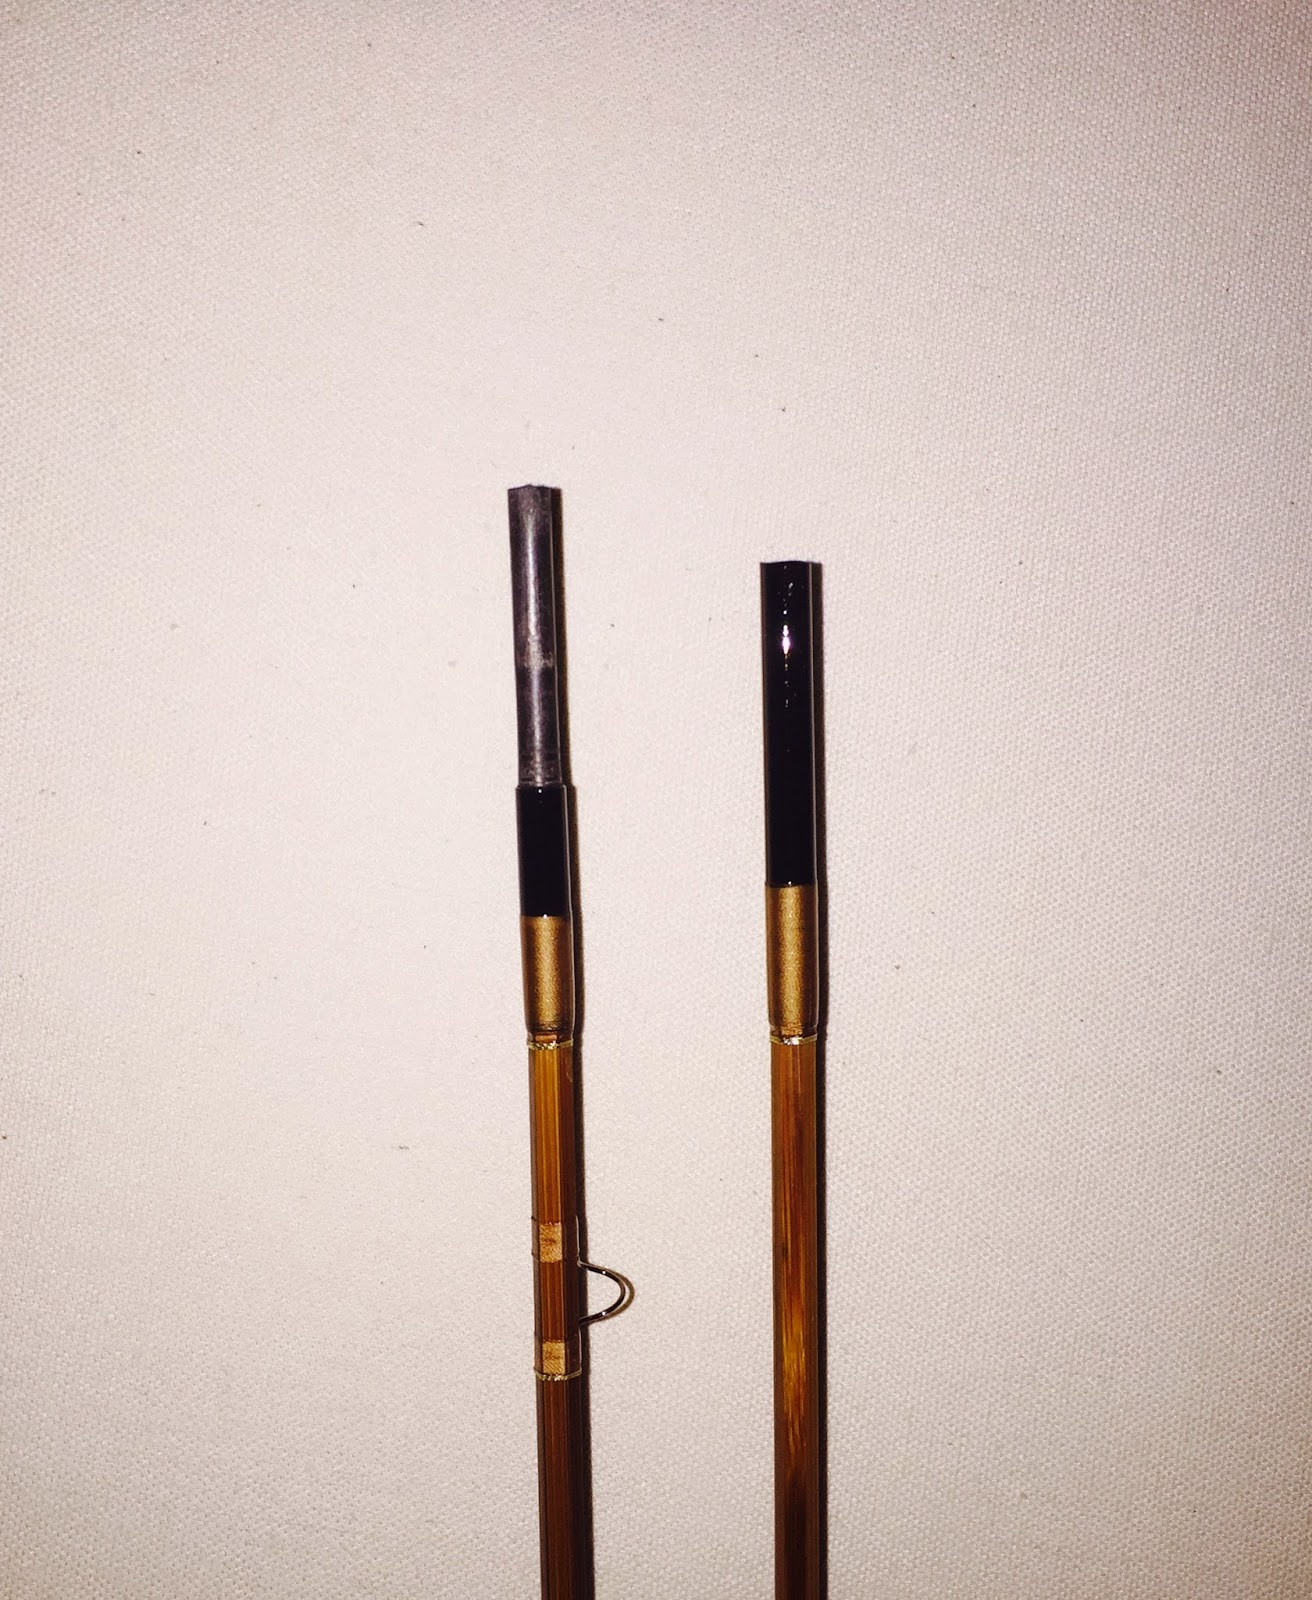 Carpenter bros bamboo fly rods new ferrules coming soon for Fishing rod ferrules